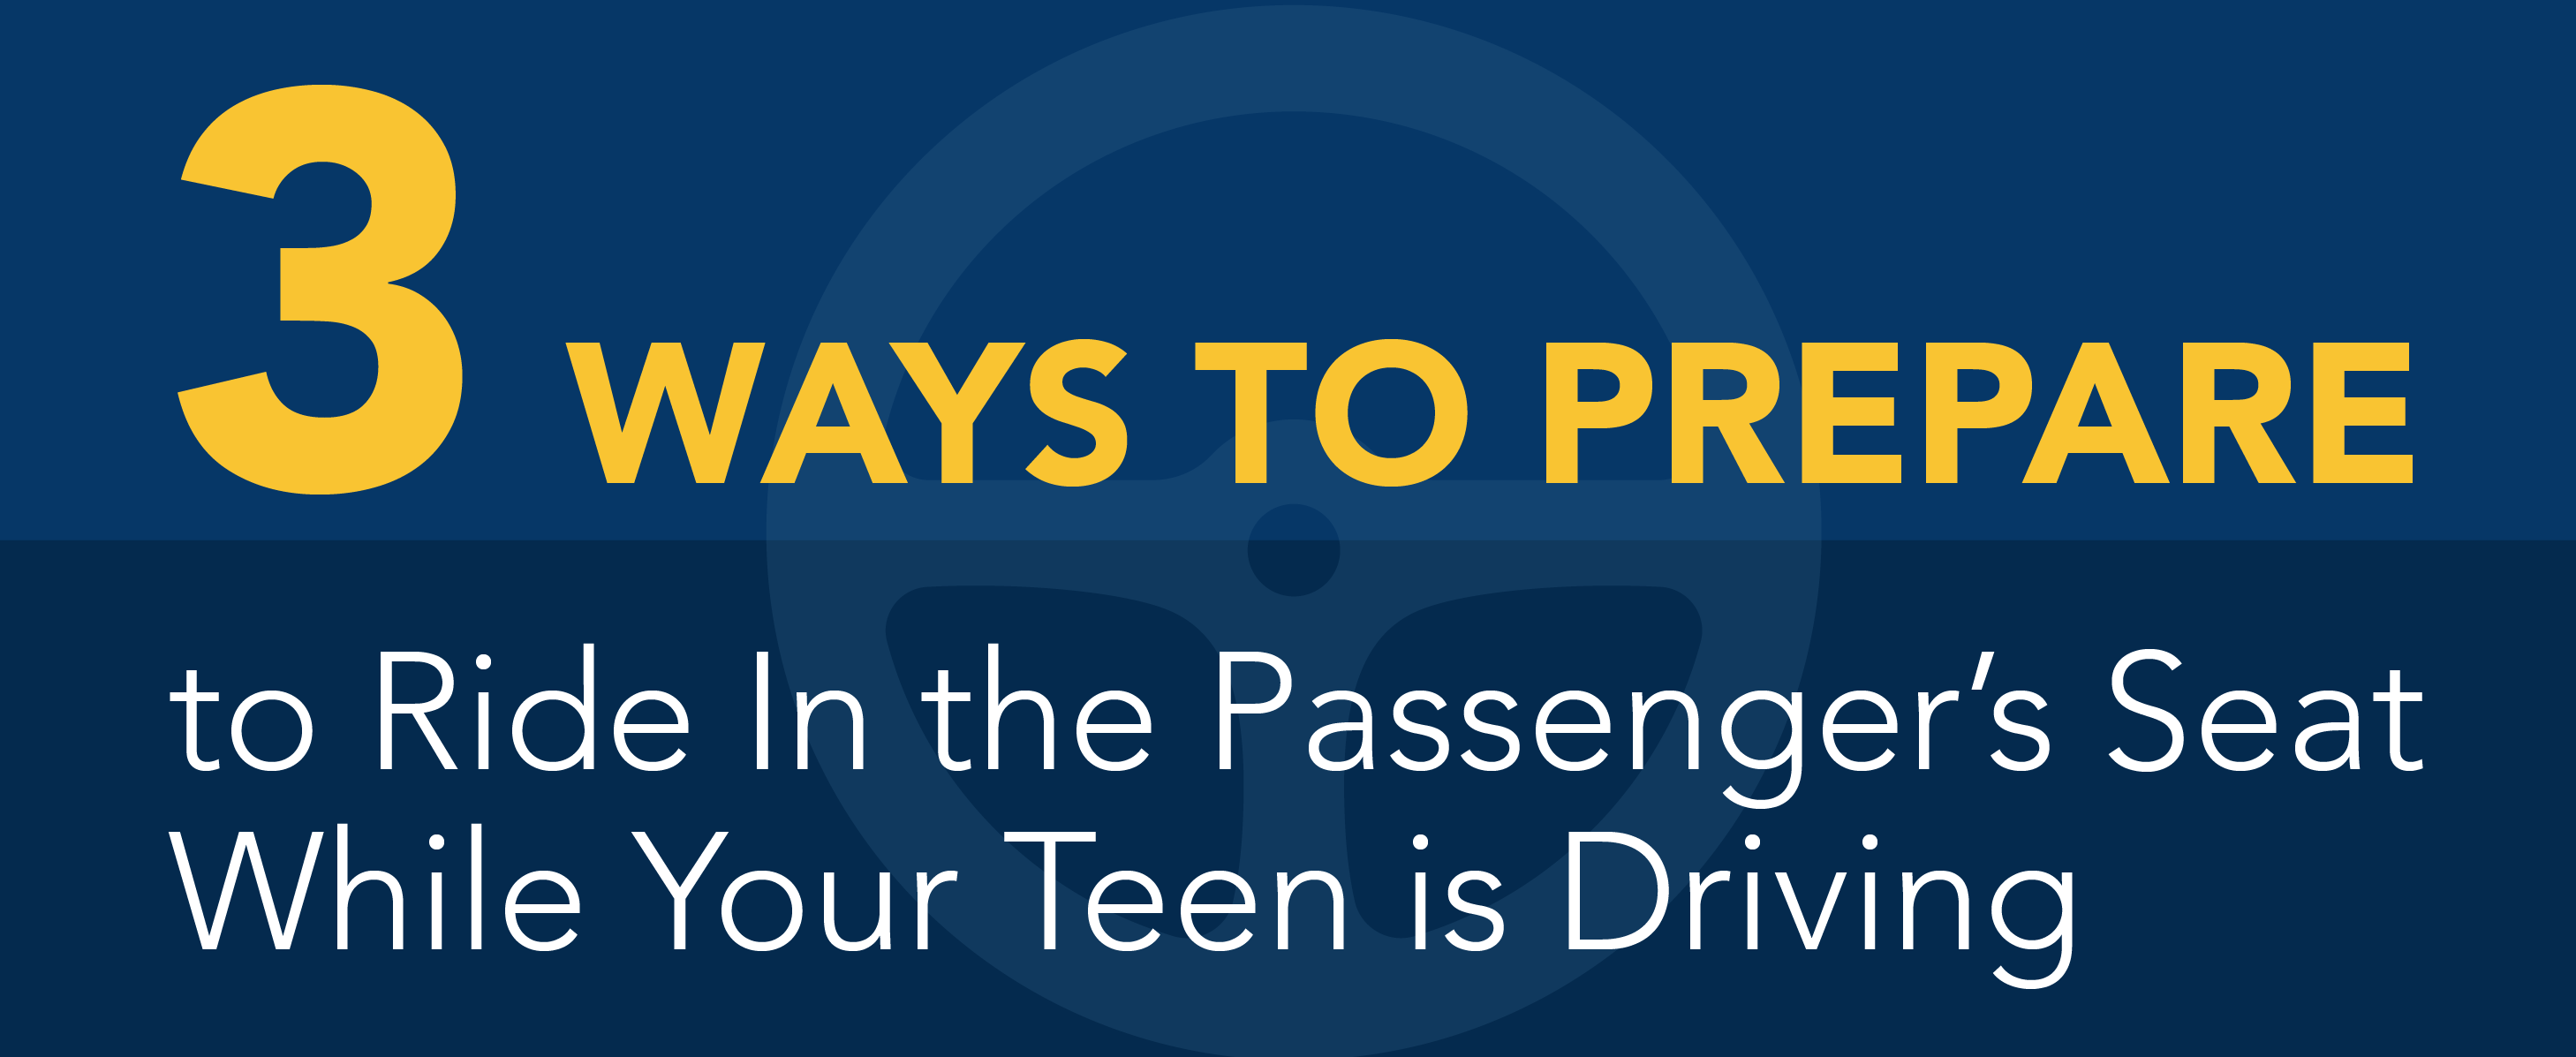 3 ways to prepare to ride in the passenger's seat while your teen is driving.